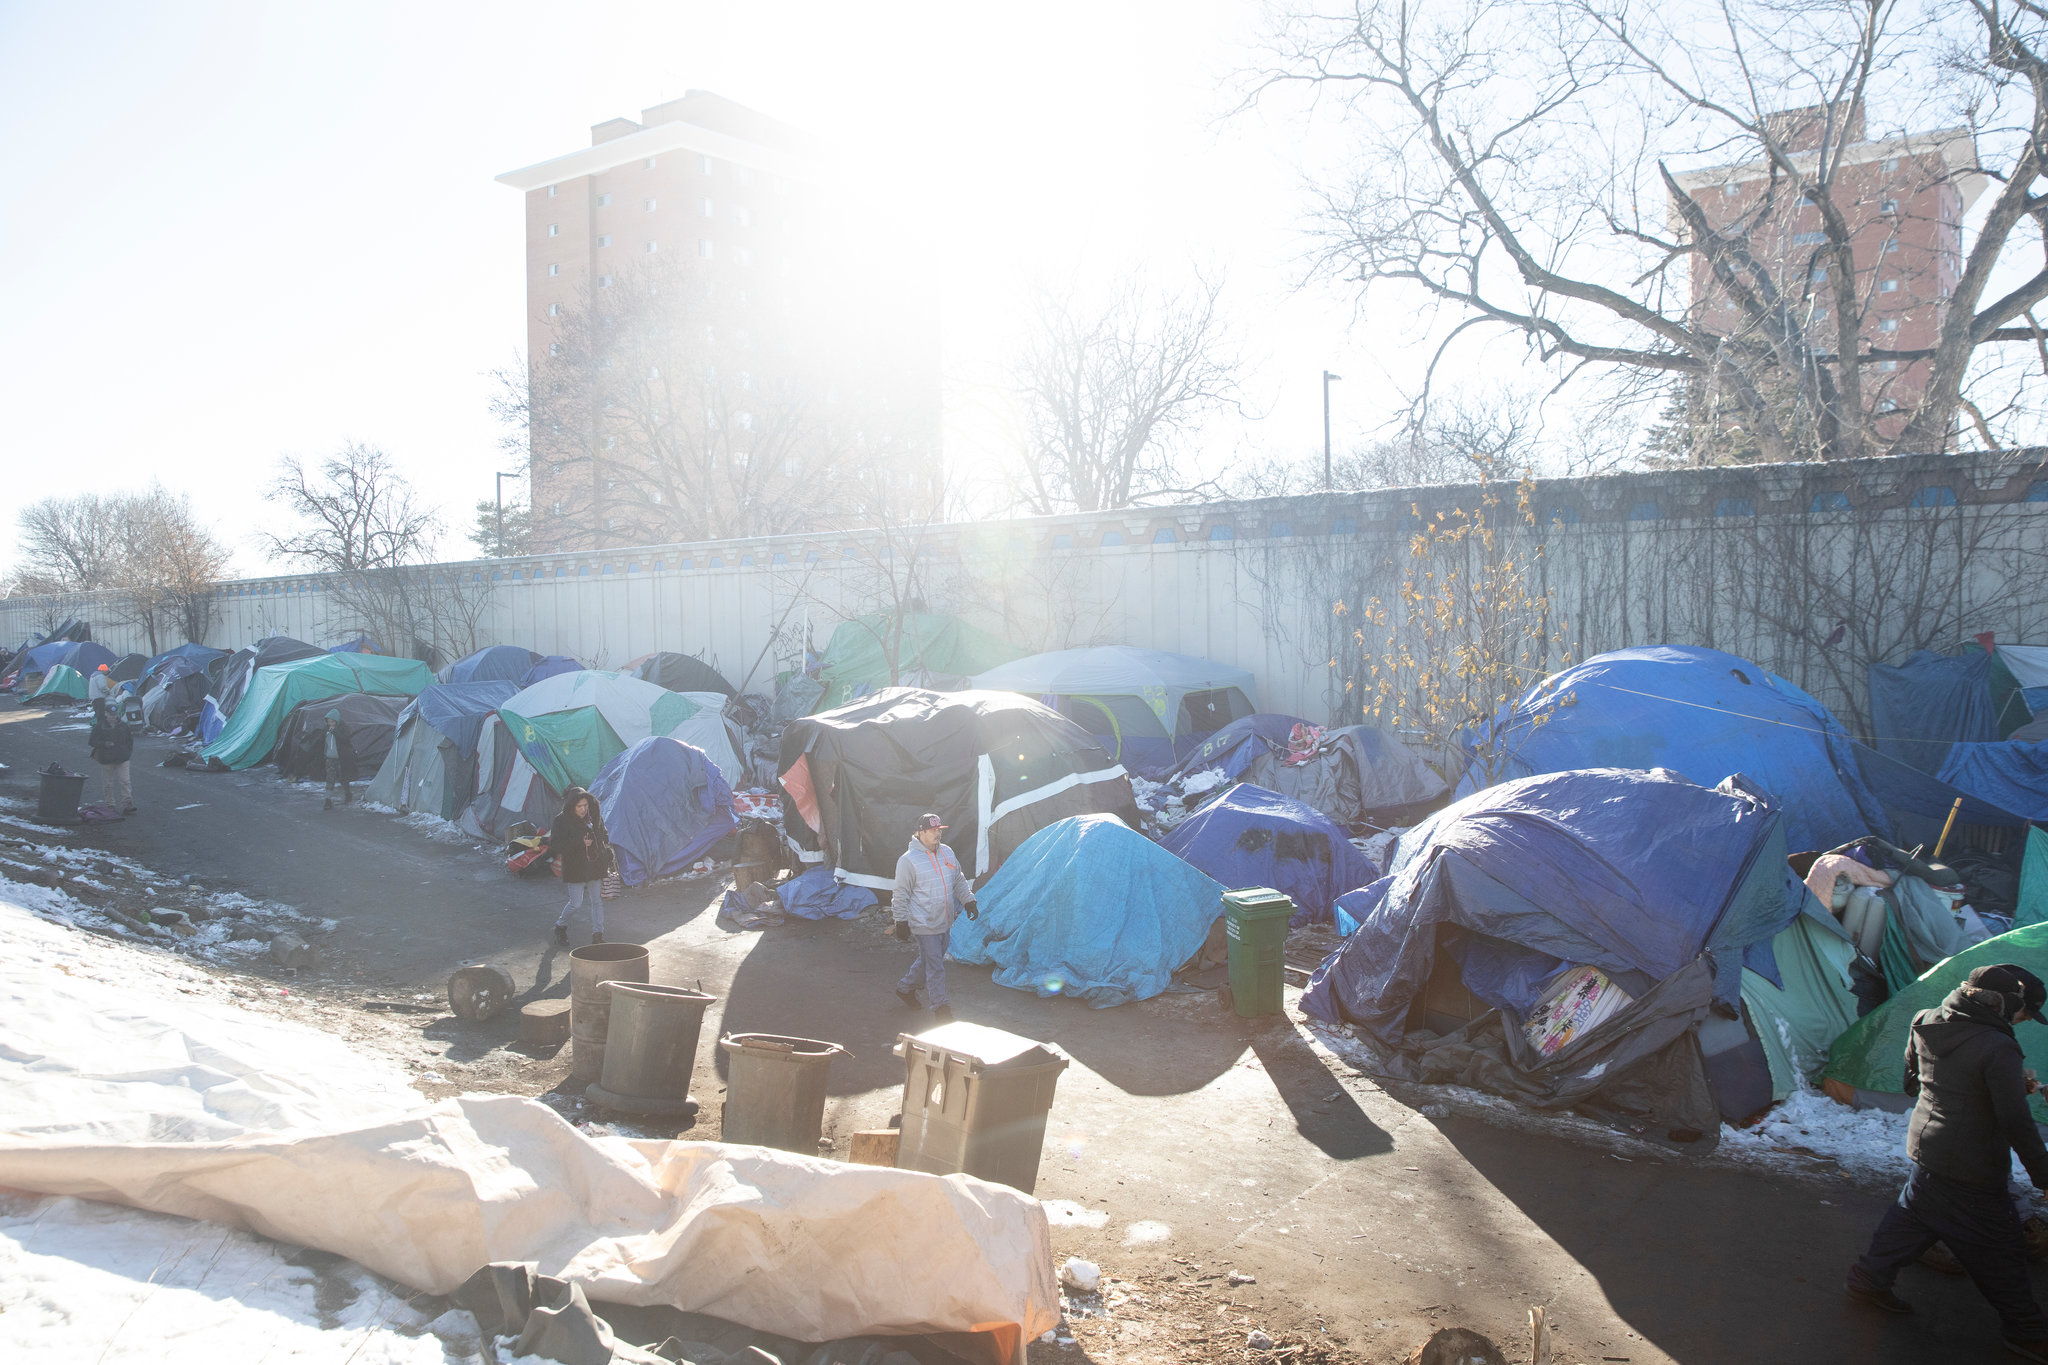 The homeless encampment in Minneapolis.  Credit: Tim Gruber for The New York Times